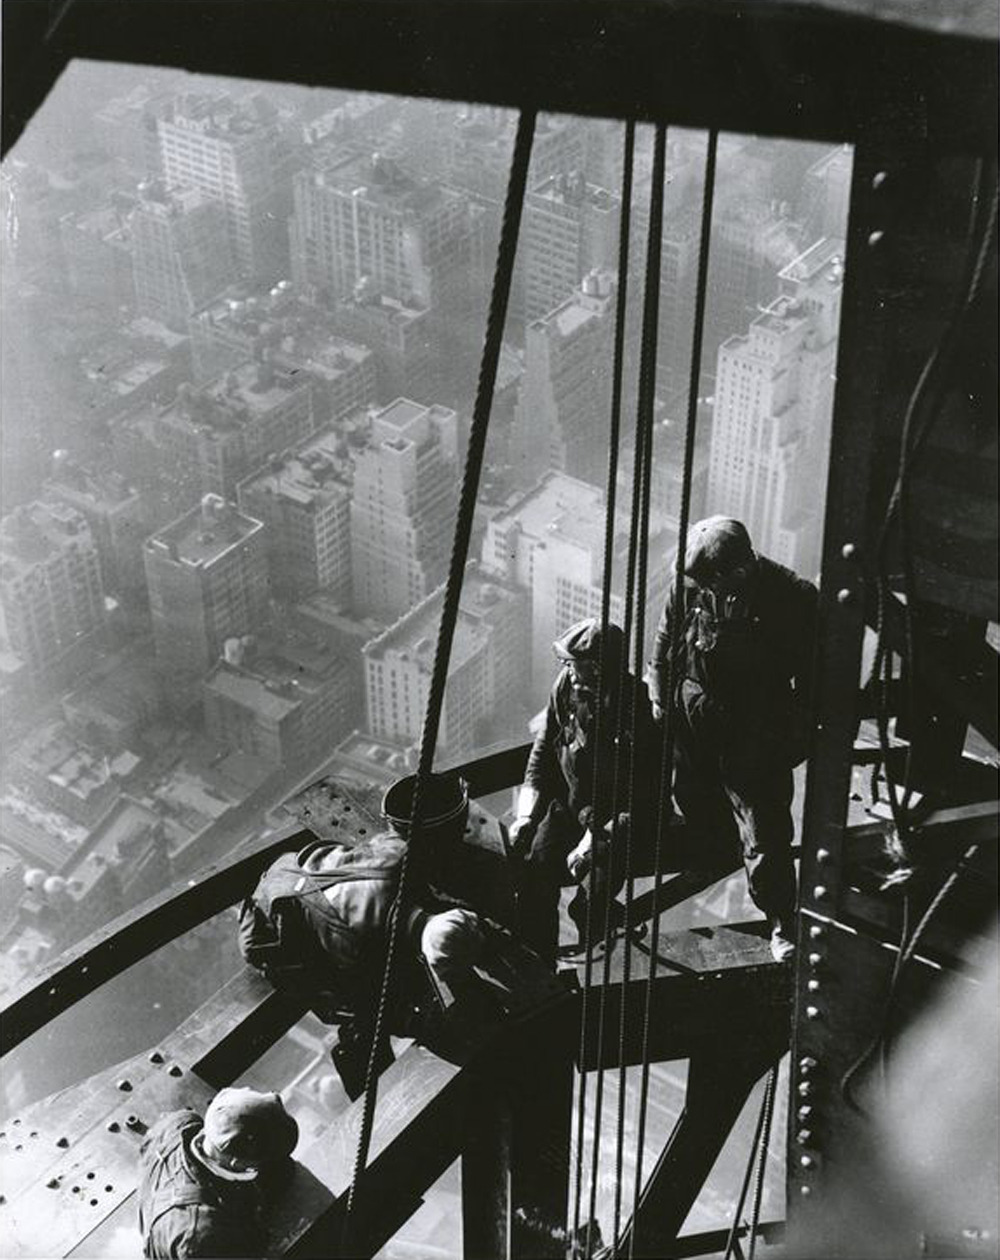 Workers on Empire State Building, 1931. By Lewis W. Hines